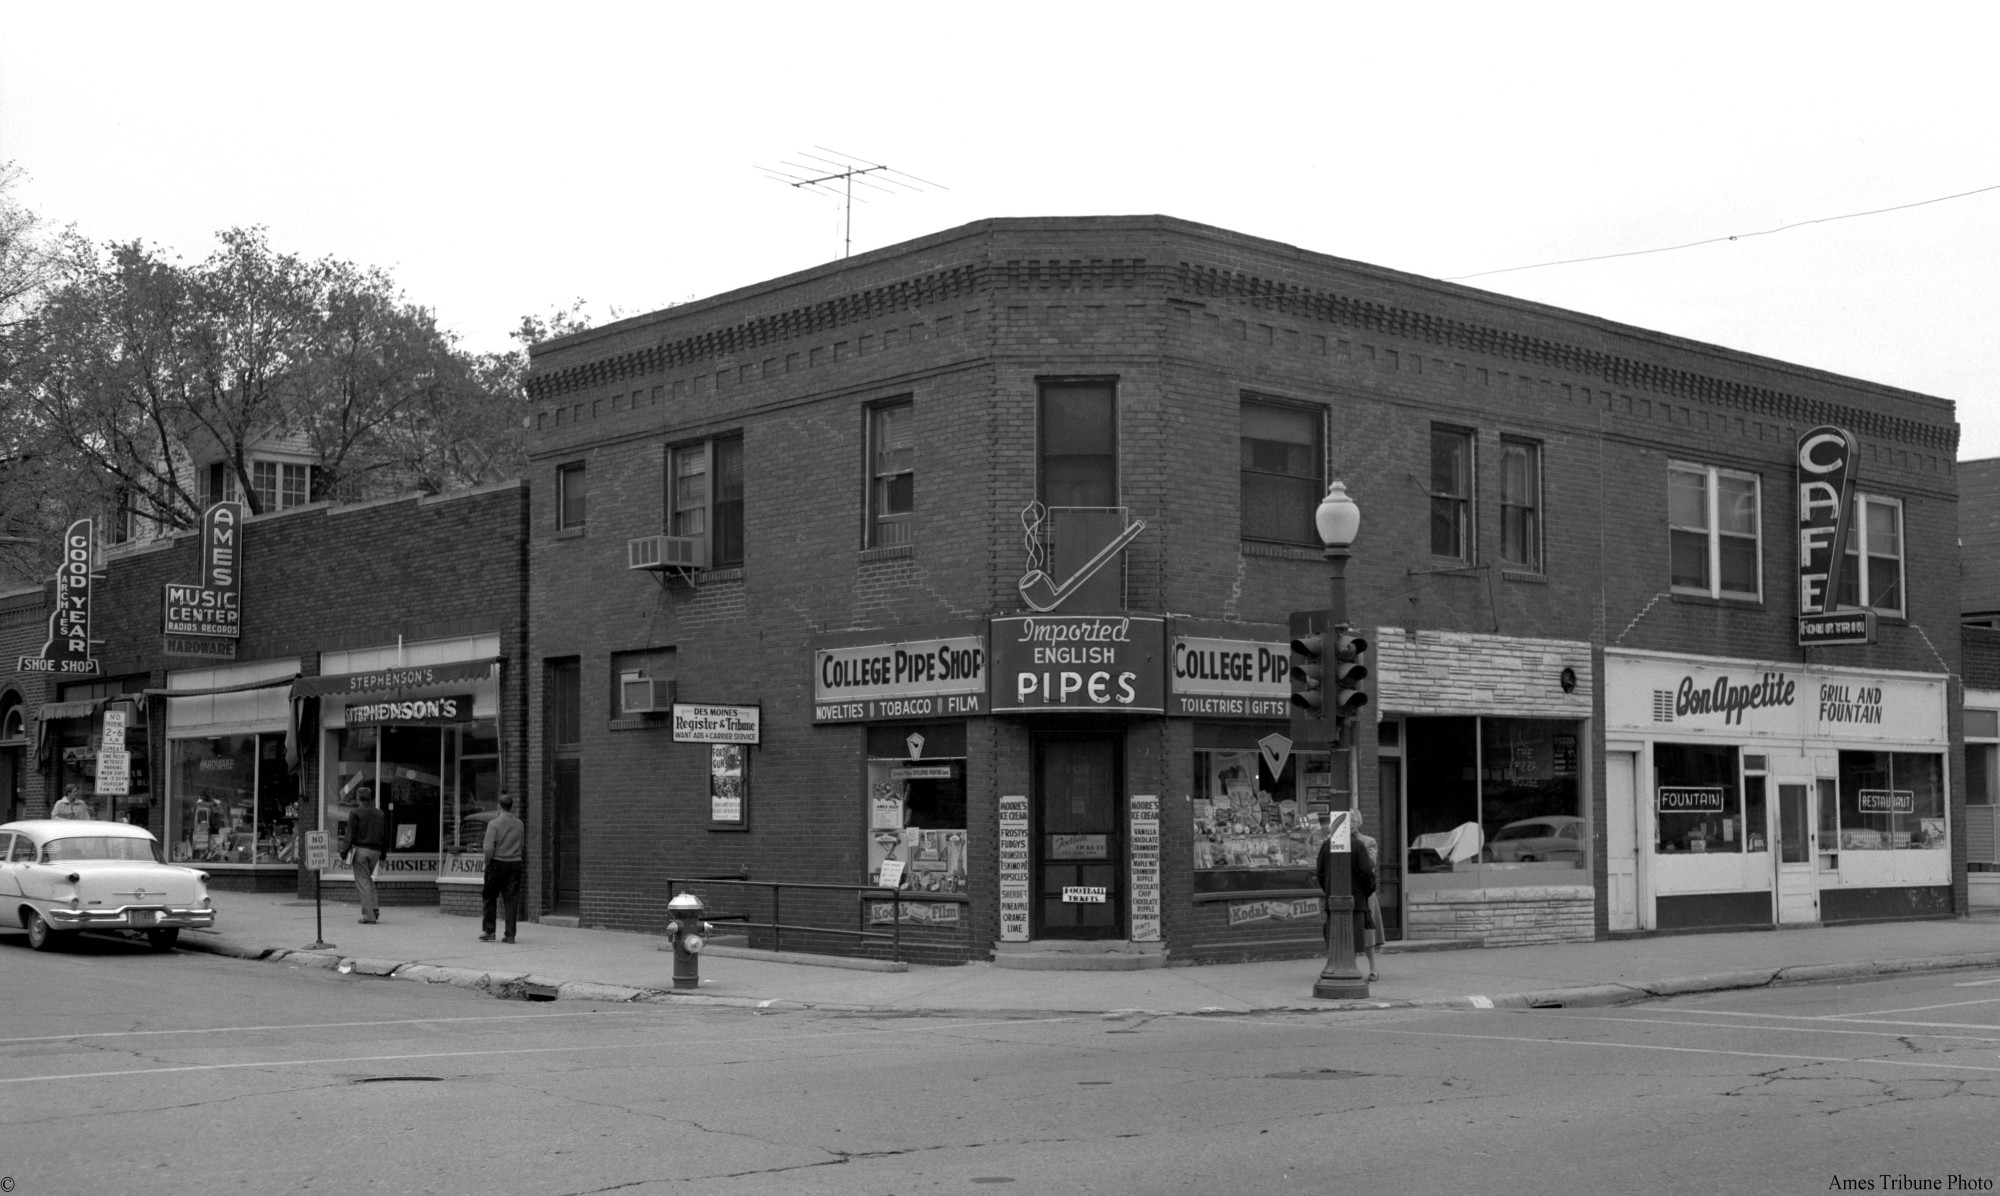 College pipe shop ames historical society for Lincoln motor inn van wyck